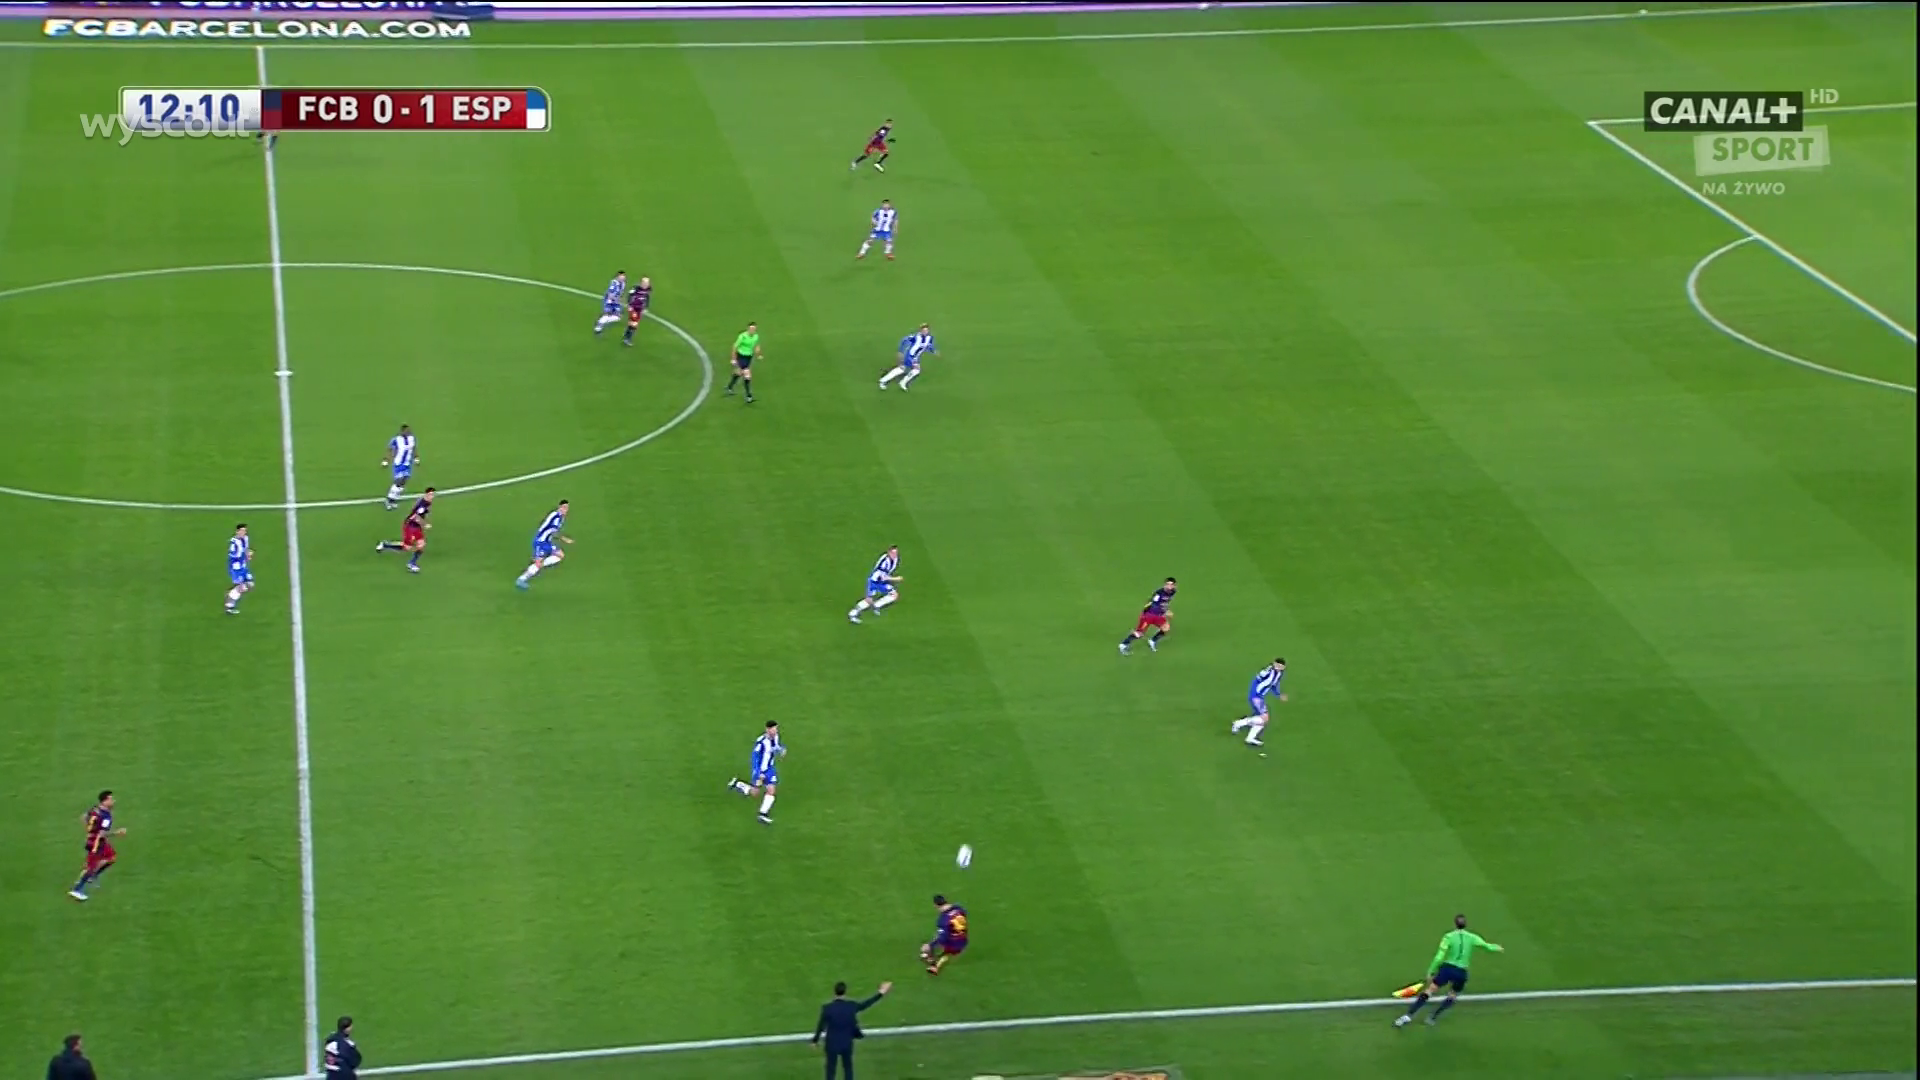 Here we can see Arda up against the Espanyol defensive line whilst Suarez drops.